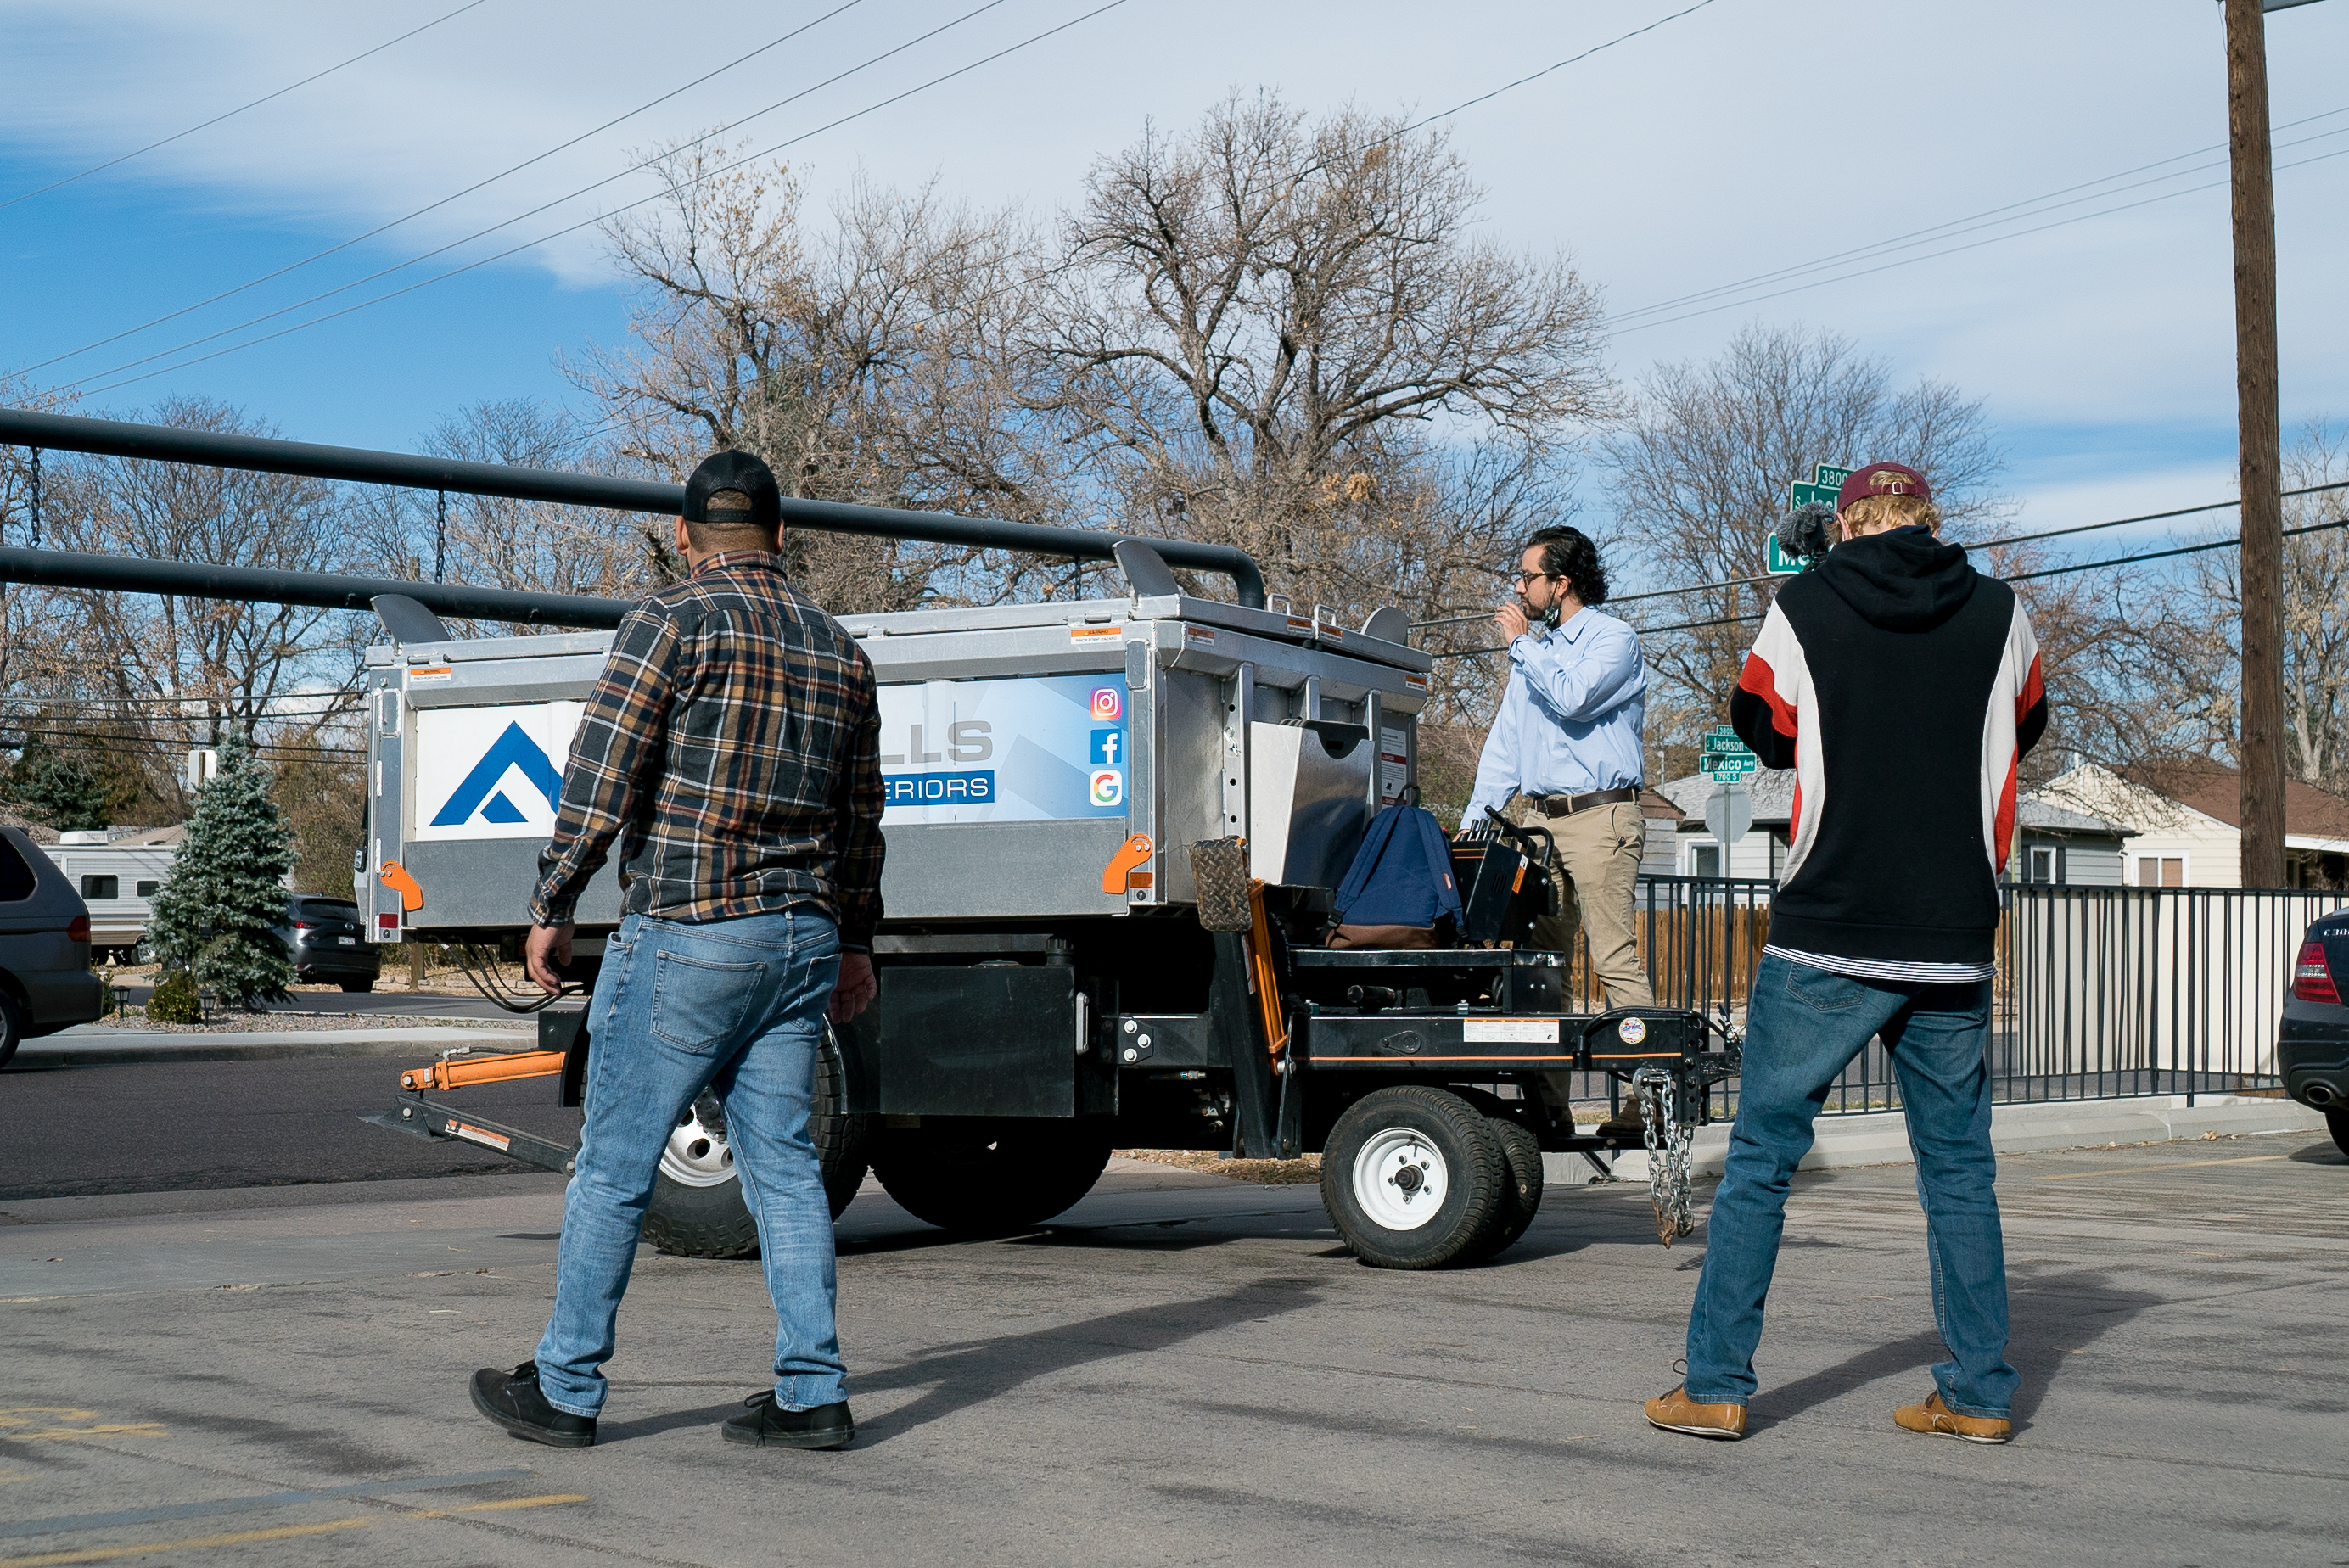 foothills roofing and exteriors team drives their equipter